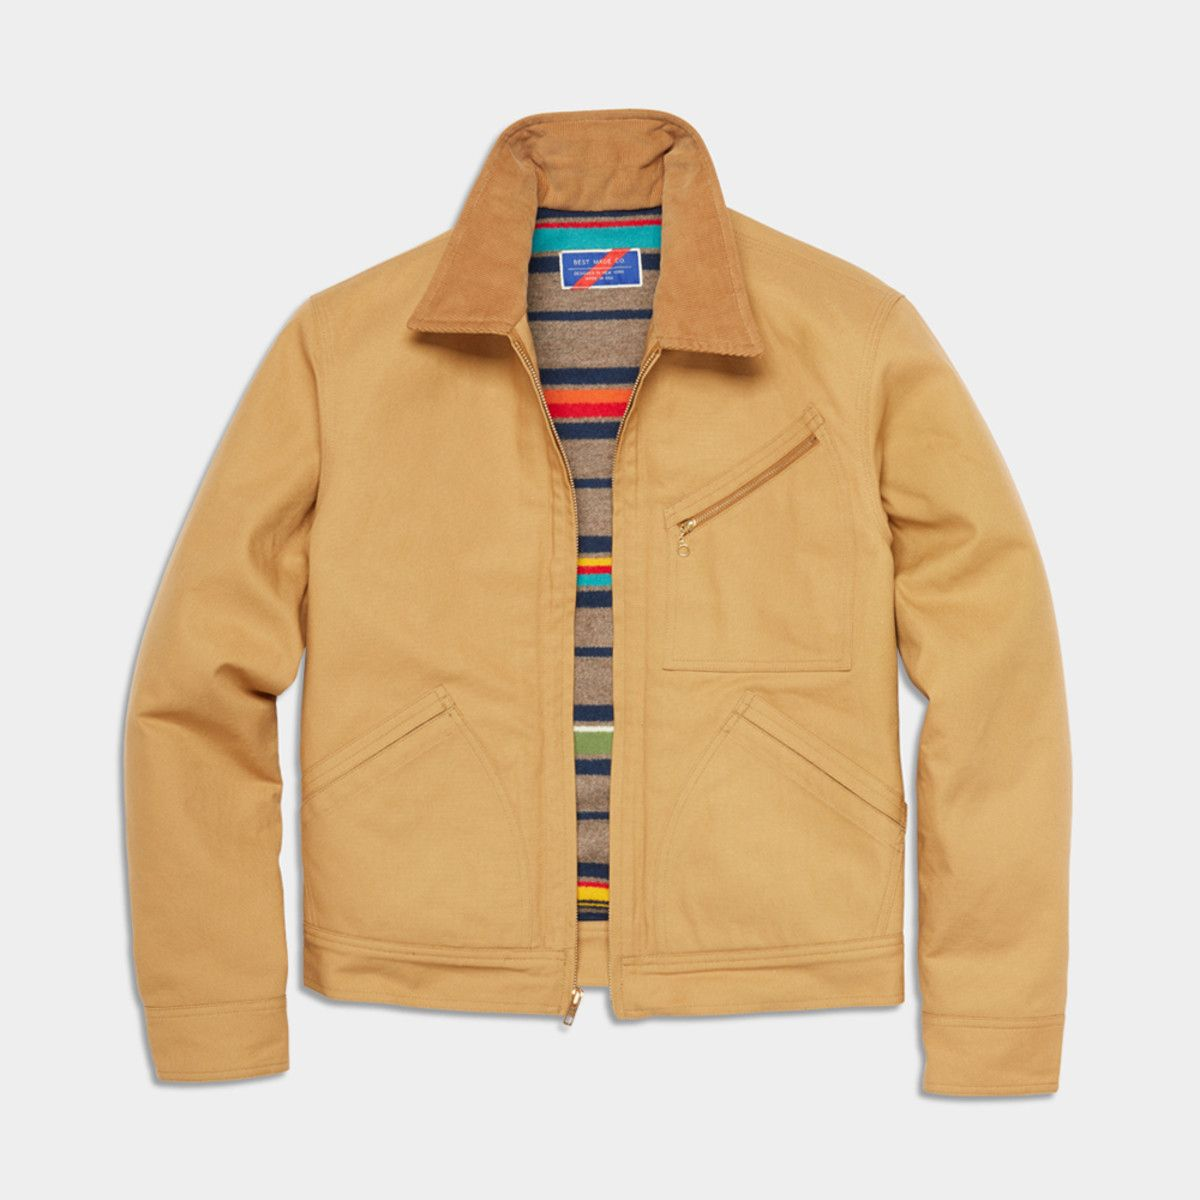 Best Made And Pendleton Team Up On A New Ranch Jacket Jackets Pendleton Cool Coats [ 1200 x 1200 Pixel ]